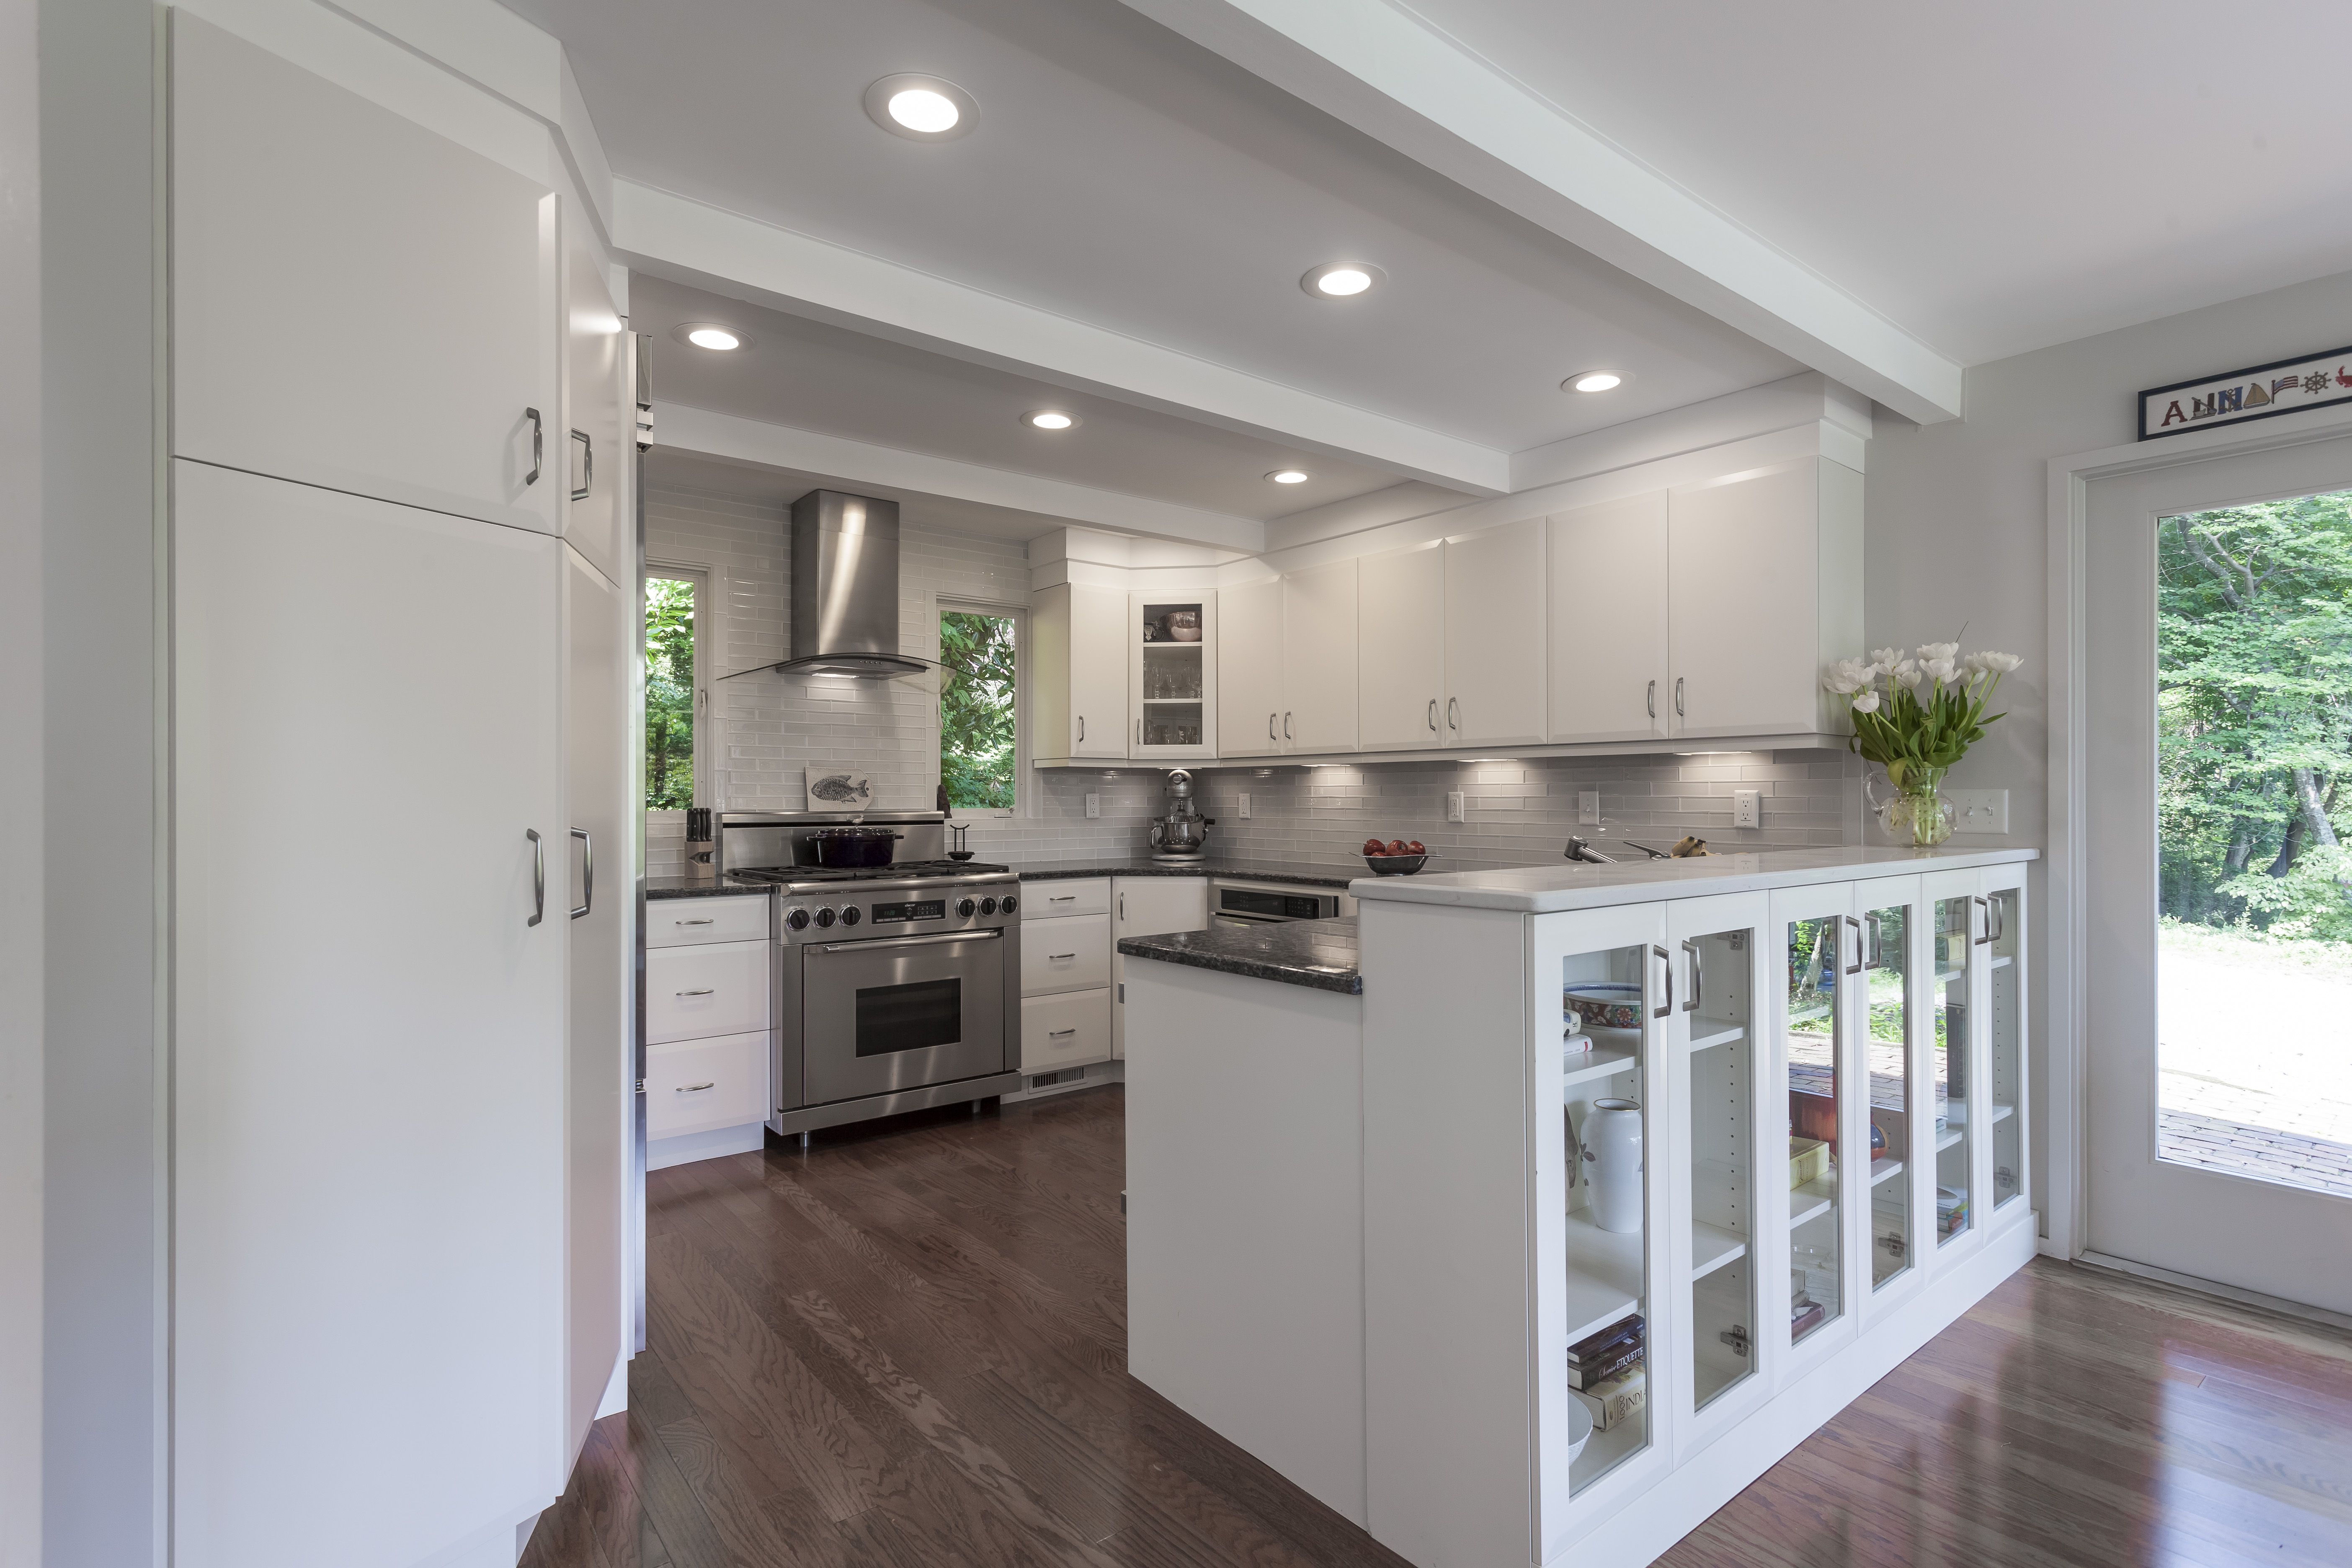 Elmwood Cabinetry, White Modern Kitchen, Small Kitchen, Glass Hutch Front  Cabinets, Angled